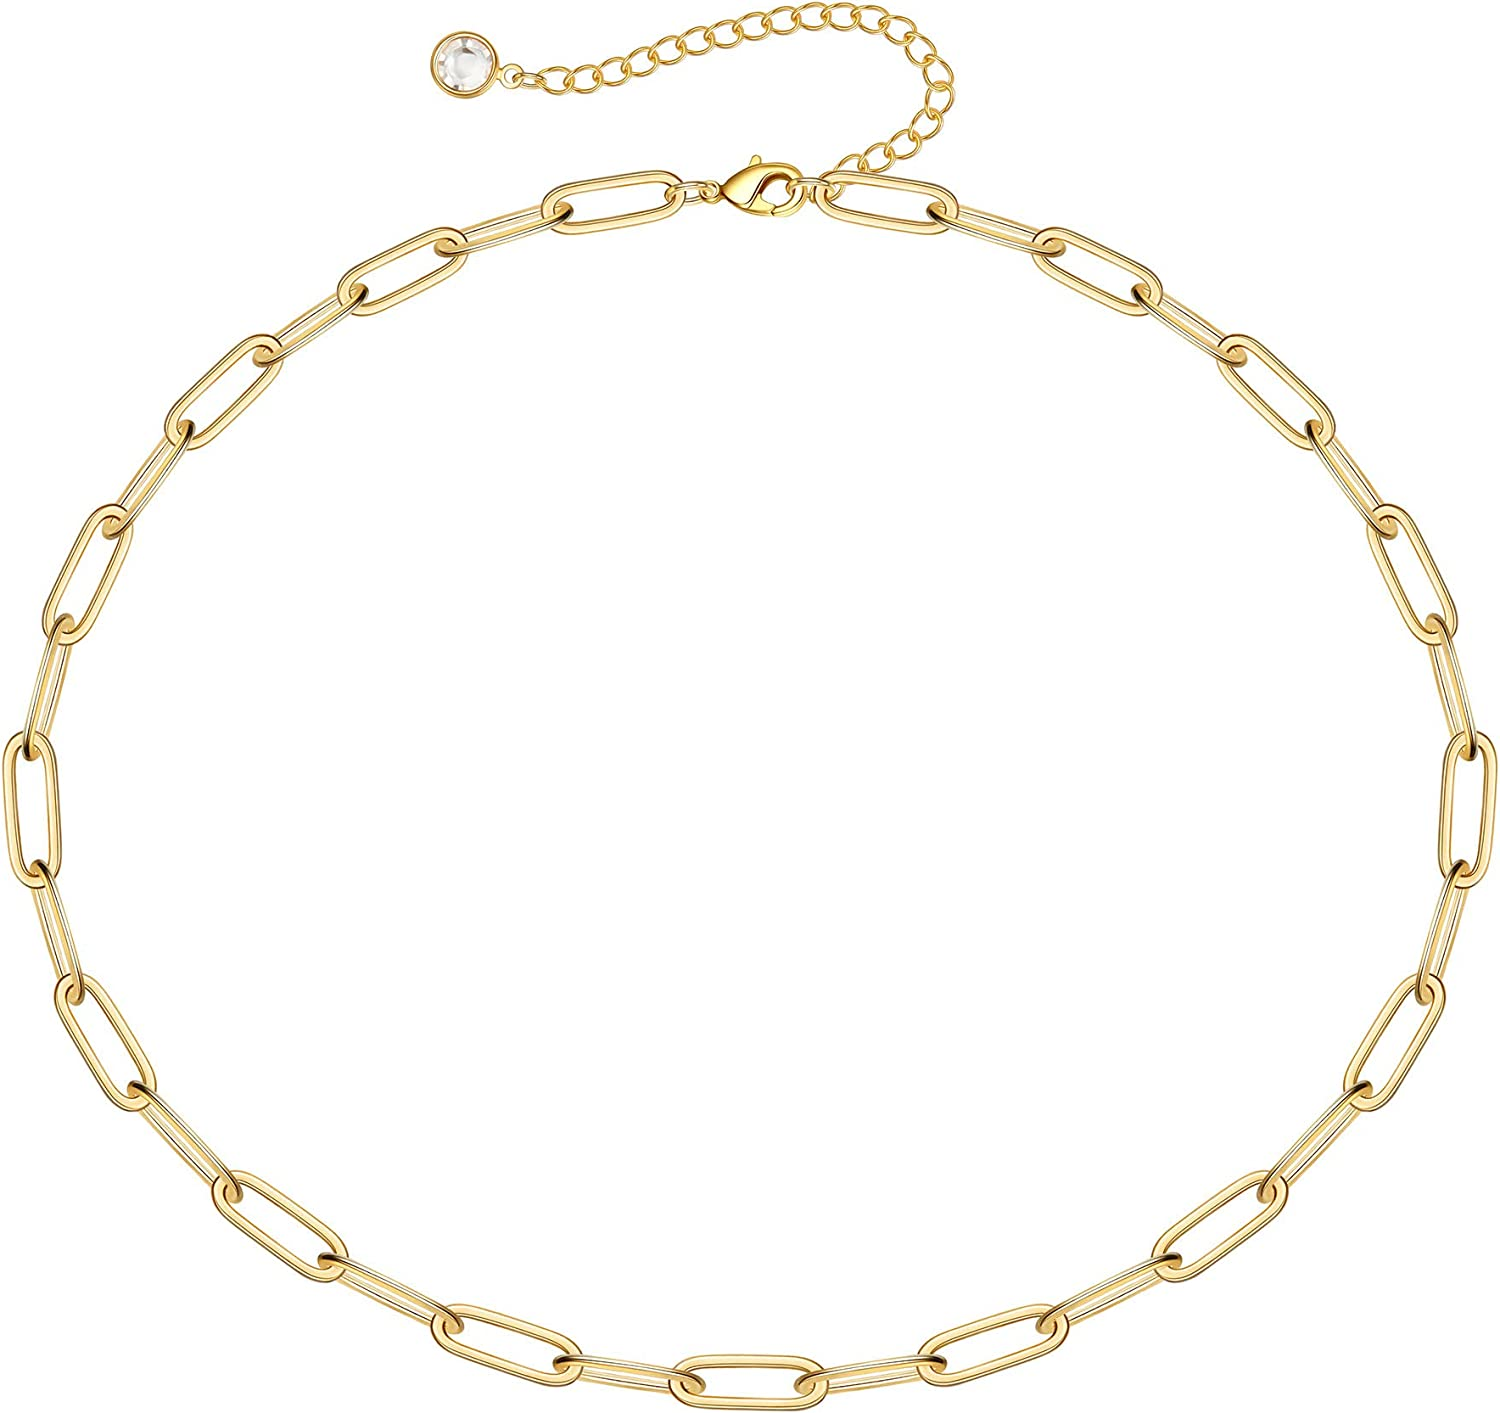 Turandoss Dainty Gold Choker Necklaces for Women - 14K Gold Plated Handmade Medallion Snake Link Chain Cross Star Moon Adjustable Simple Choker Necklaces for Women Jewelry